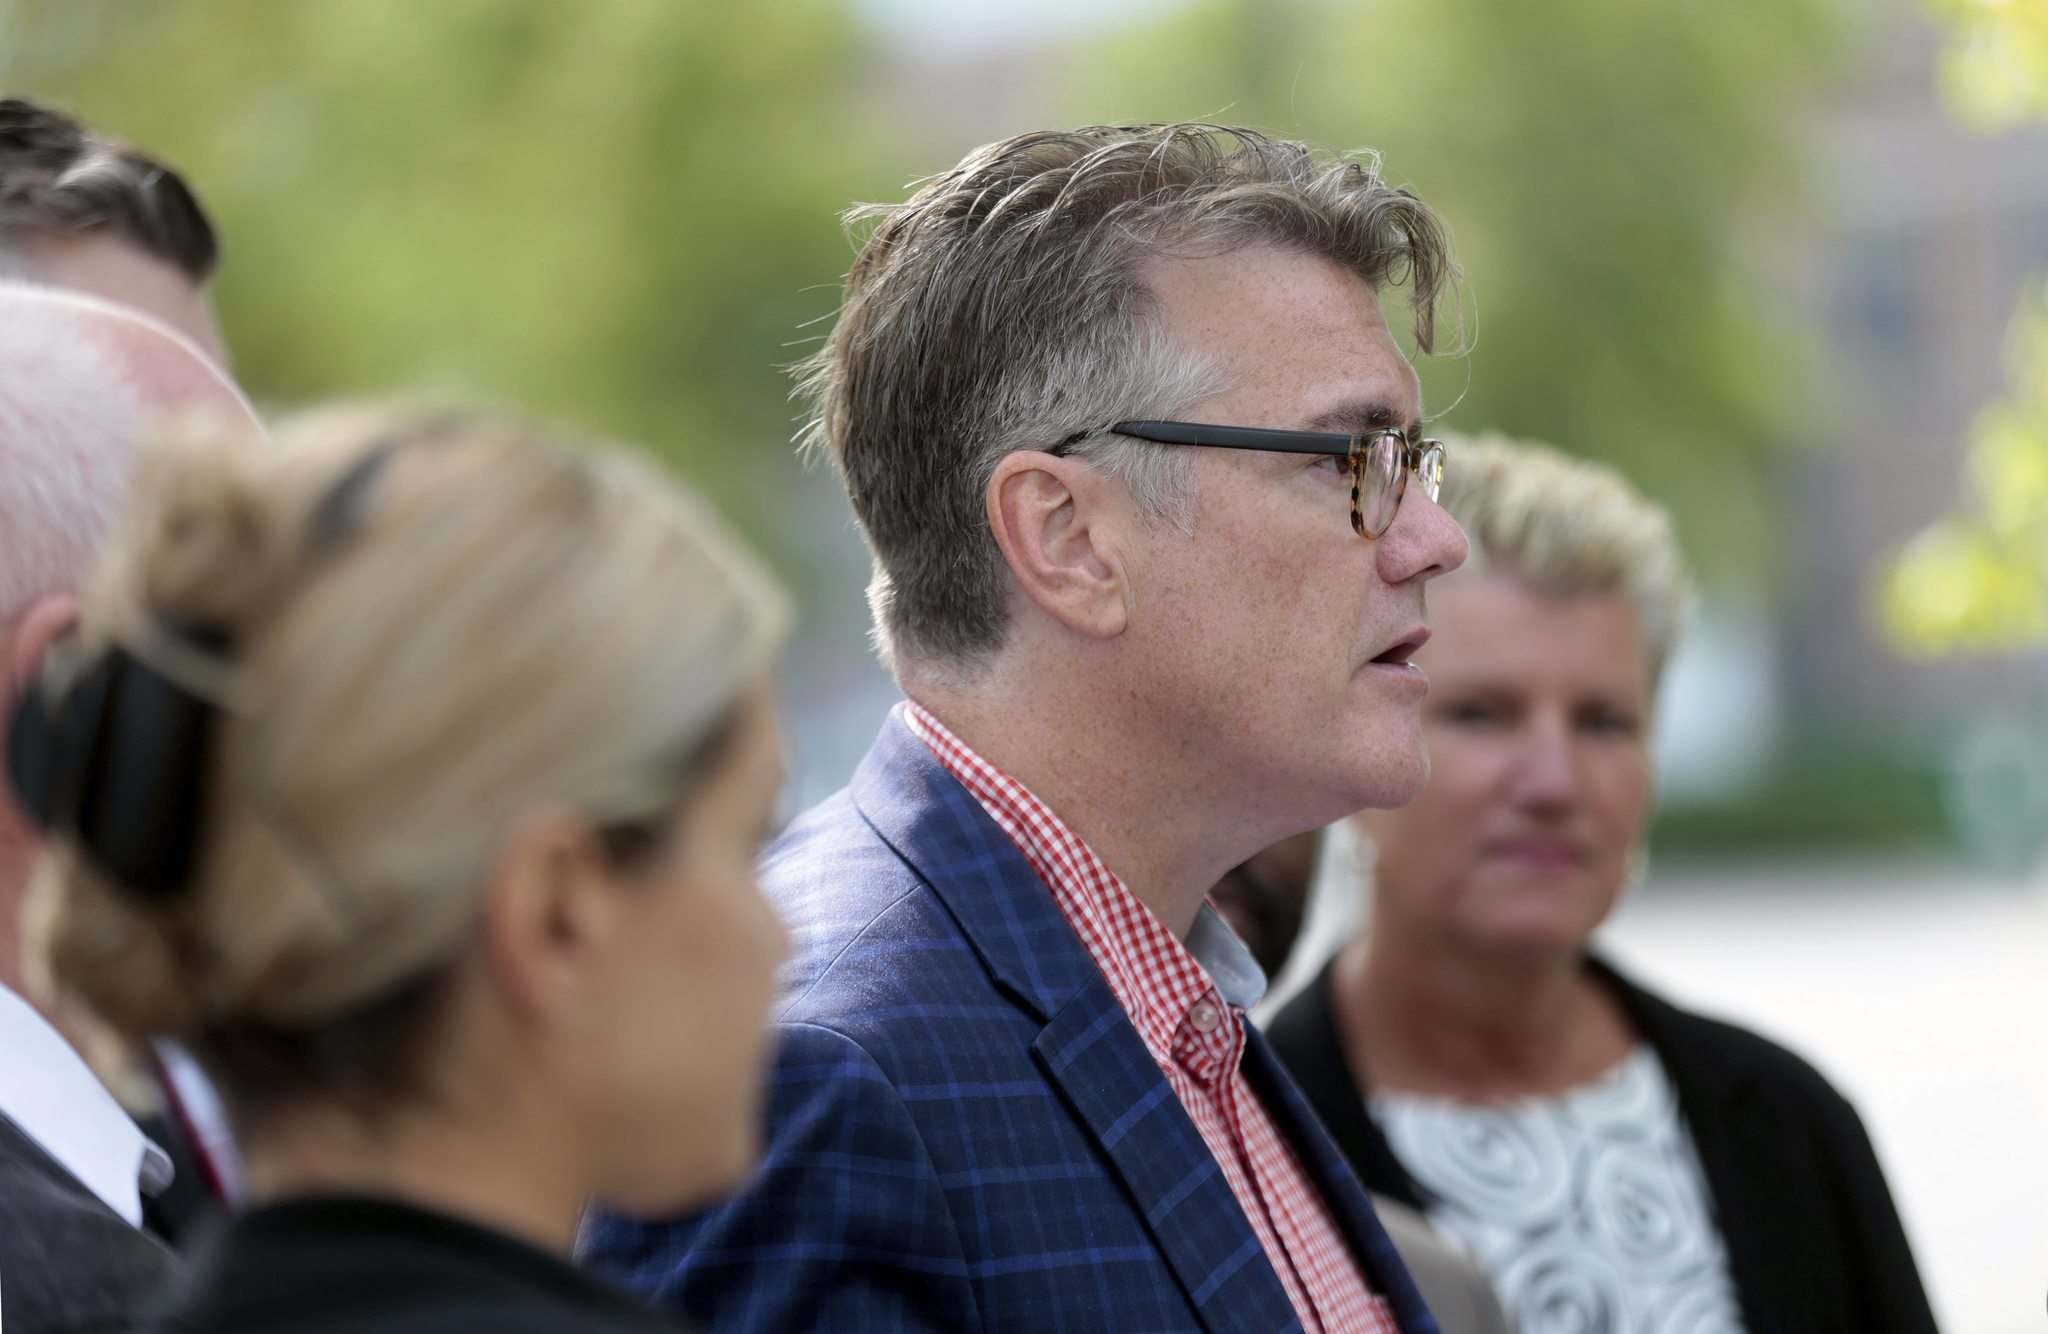 PHIL HOSSACK / WINNIPEG FREE PRESS</p><p>Liberal Leader Dougald Lamont said his party would increase enforcement of workplace health and safety issues.</p></p>